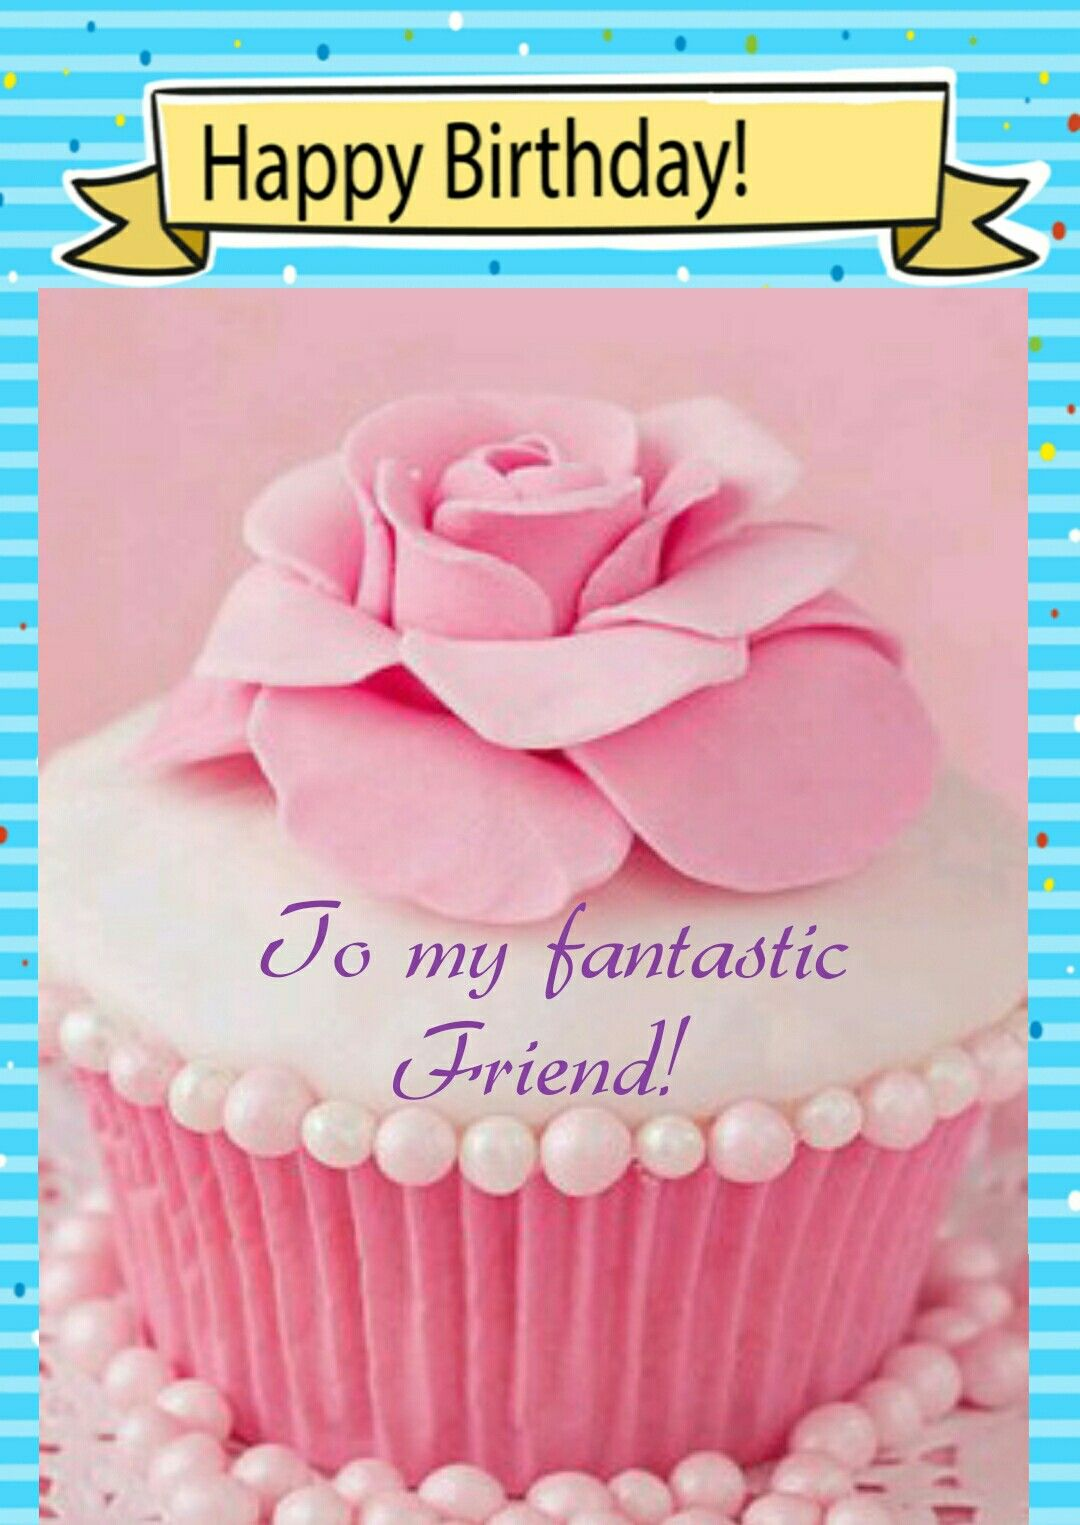 Happy Birthday To My Fantastic Friend! I made this using